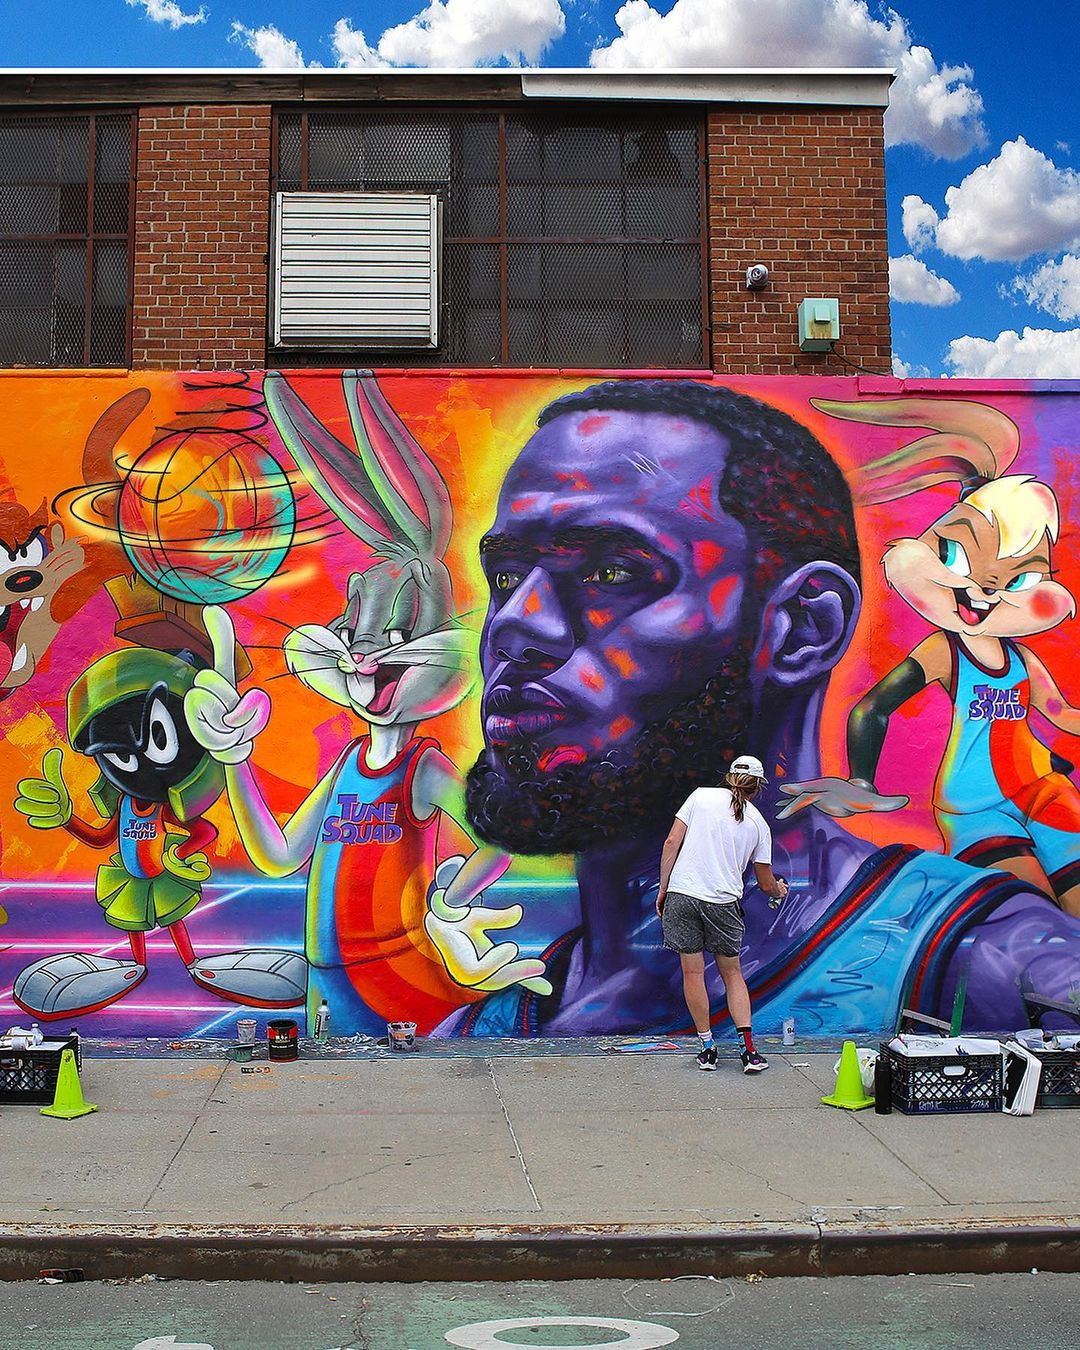 Artwork By Madsteez in New York City (Portrait)